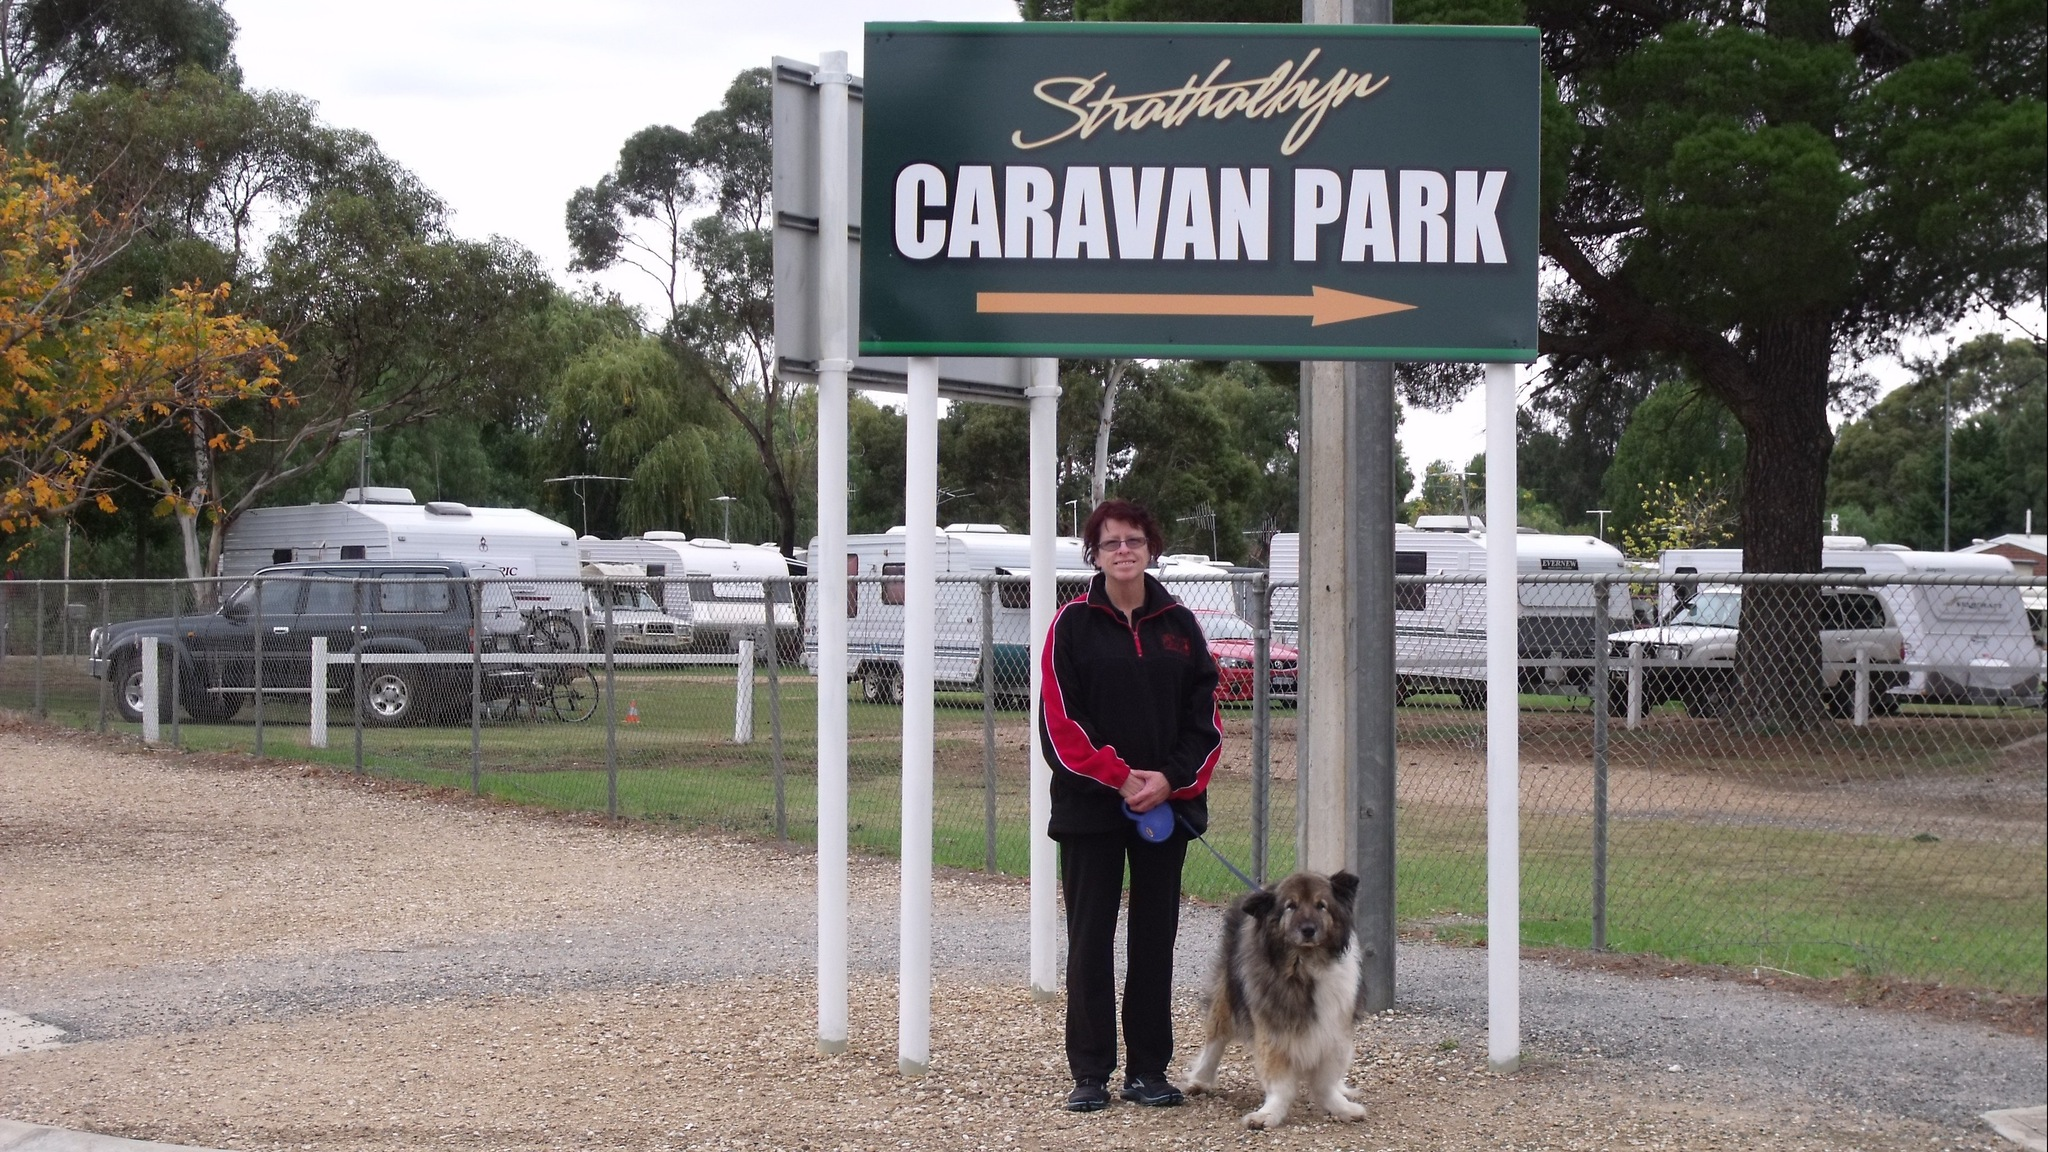 Strathalbyn Caravan Park - Whitsundays Accommodation